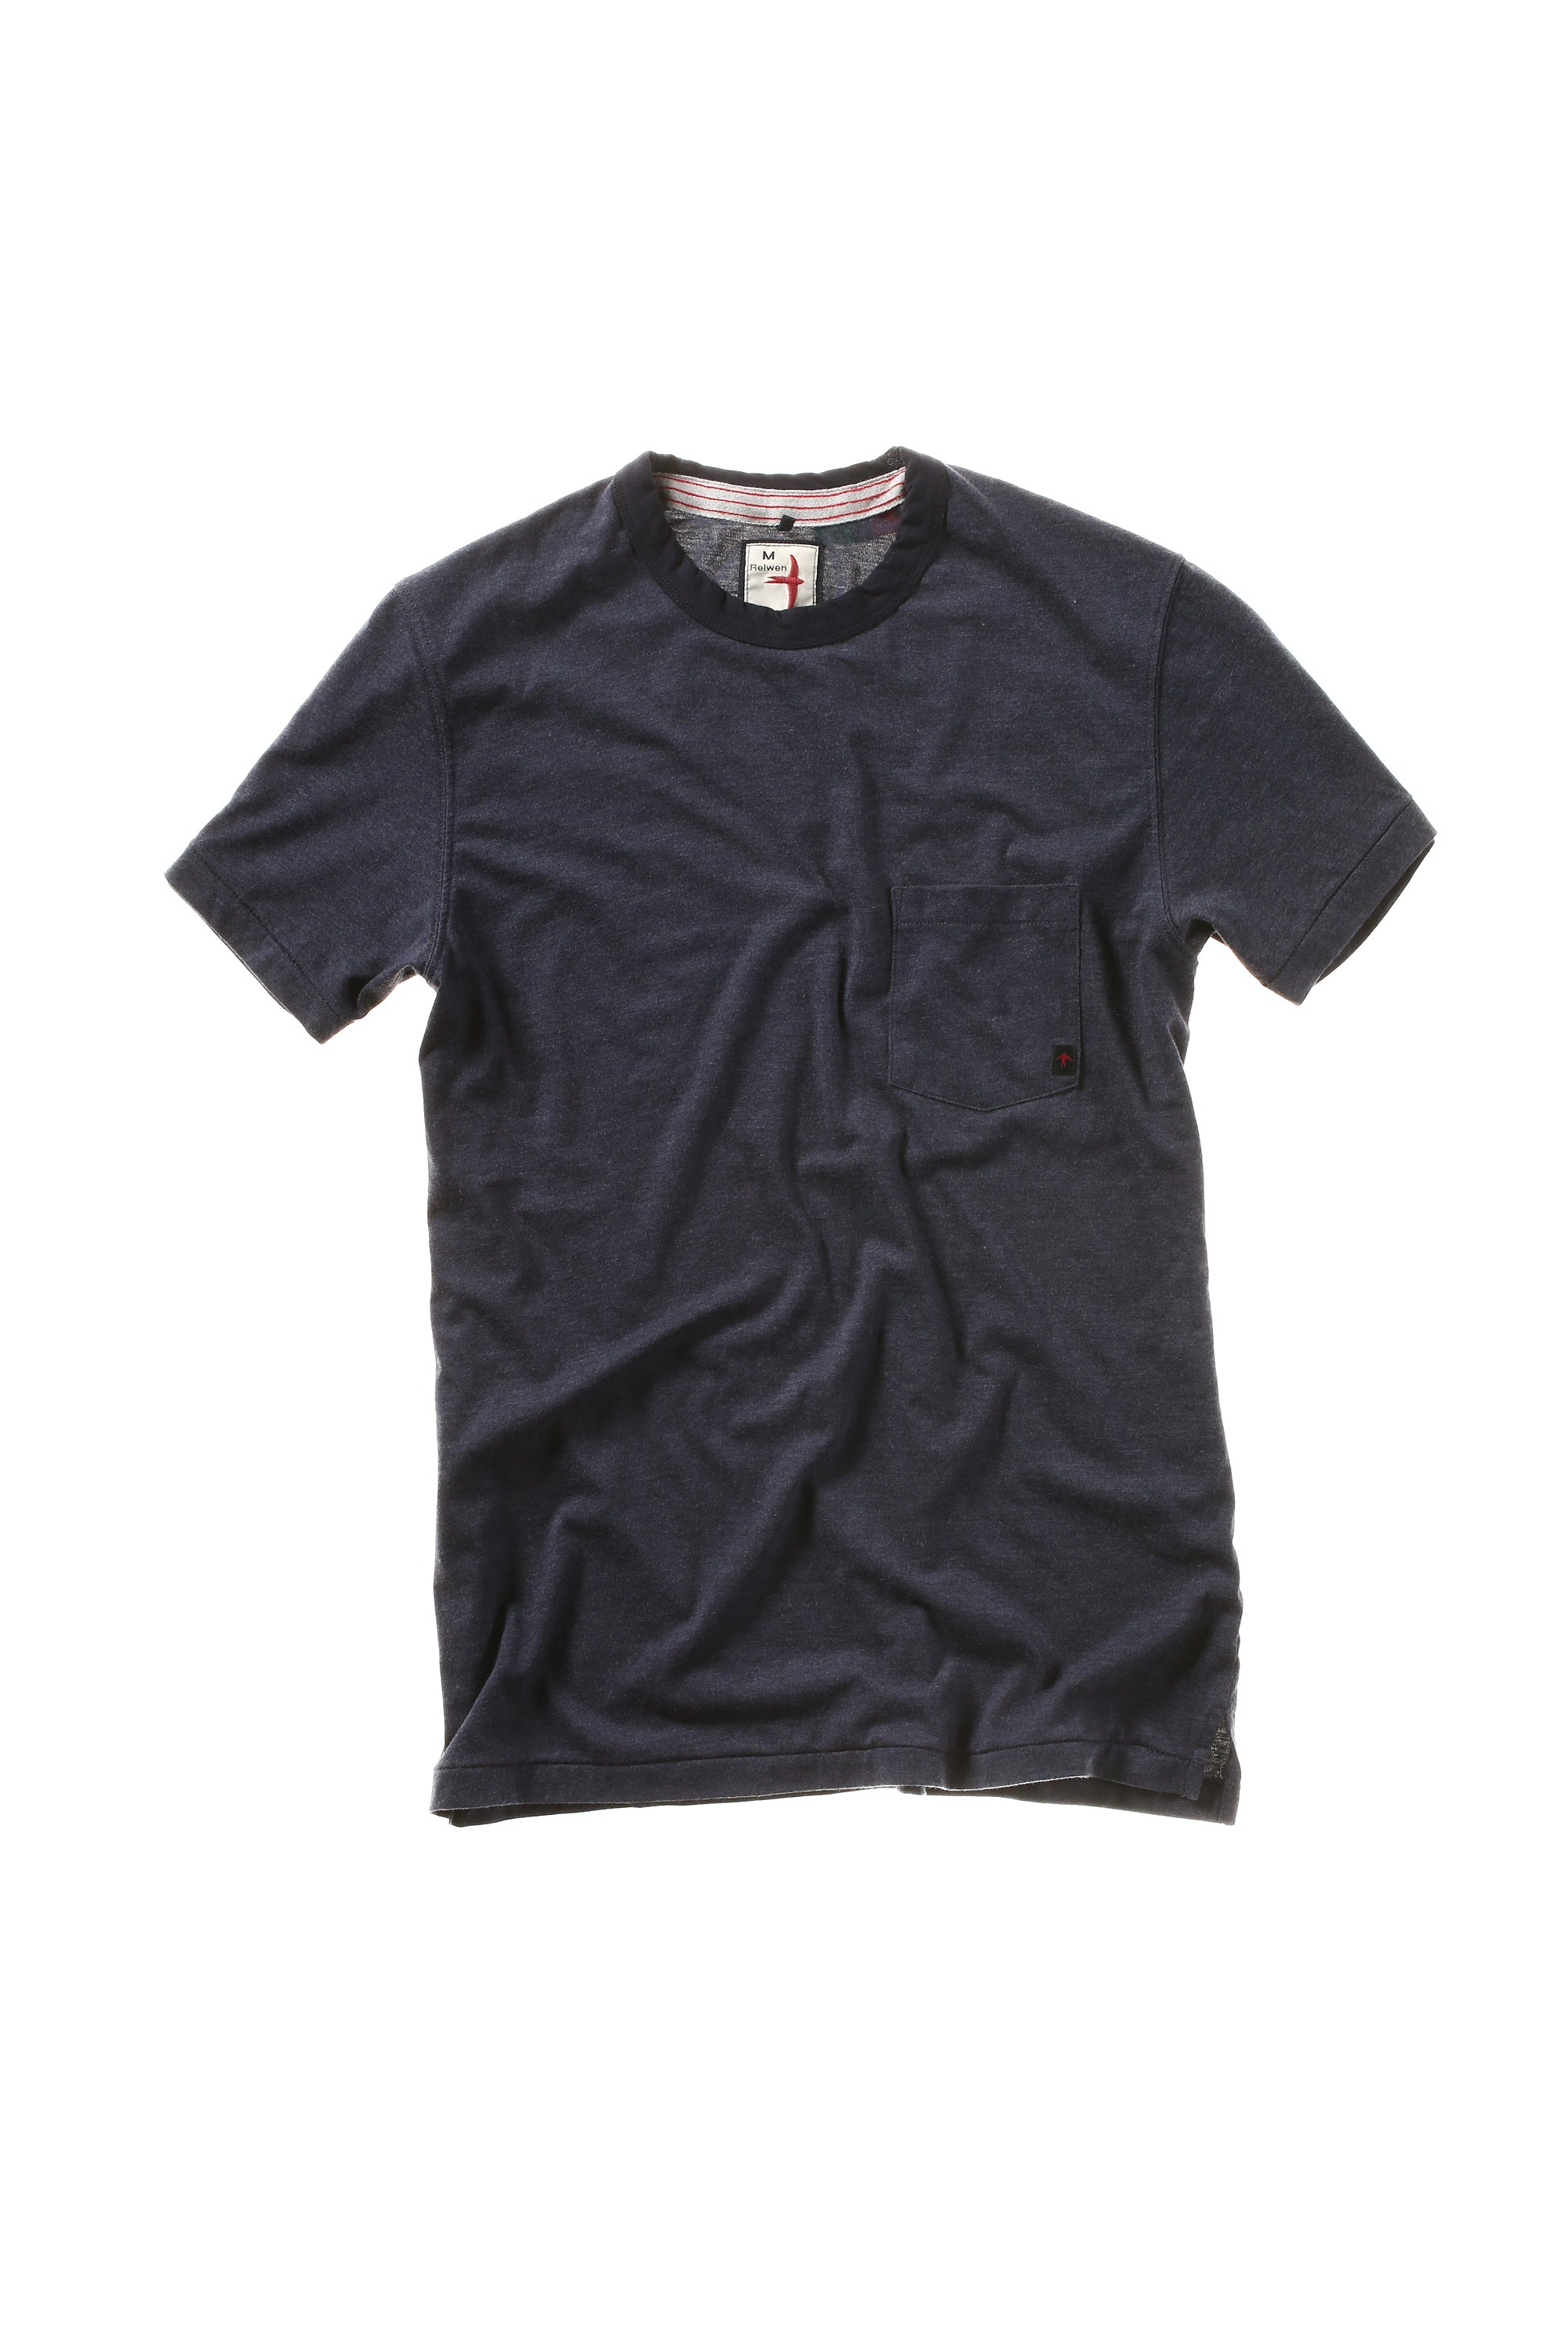 Ringer Pocket Tee in Midnight Heather